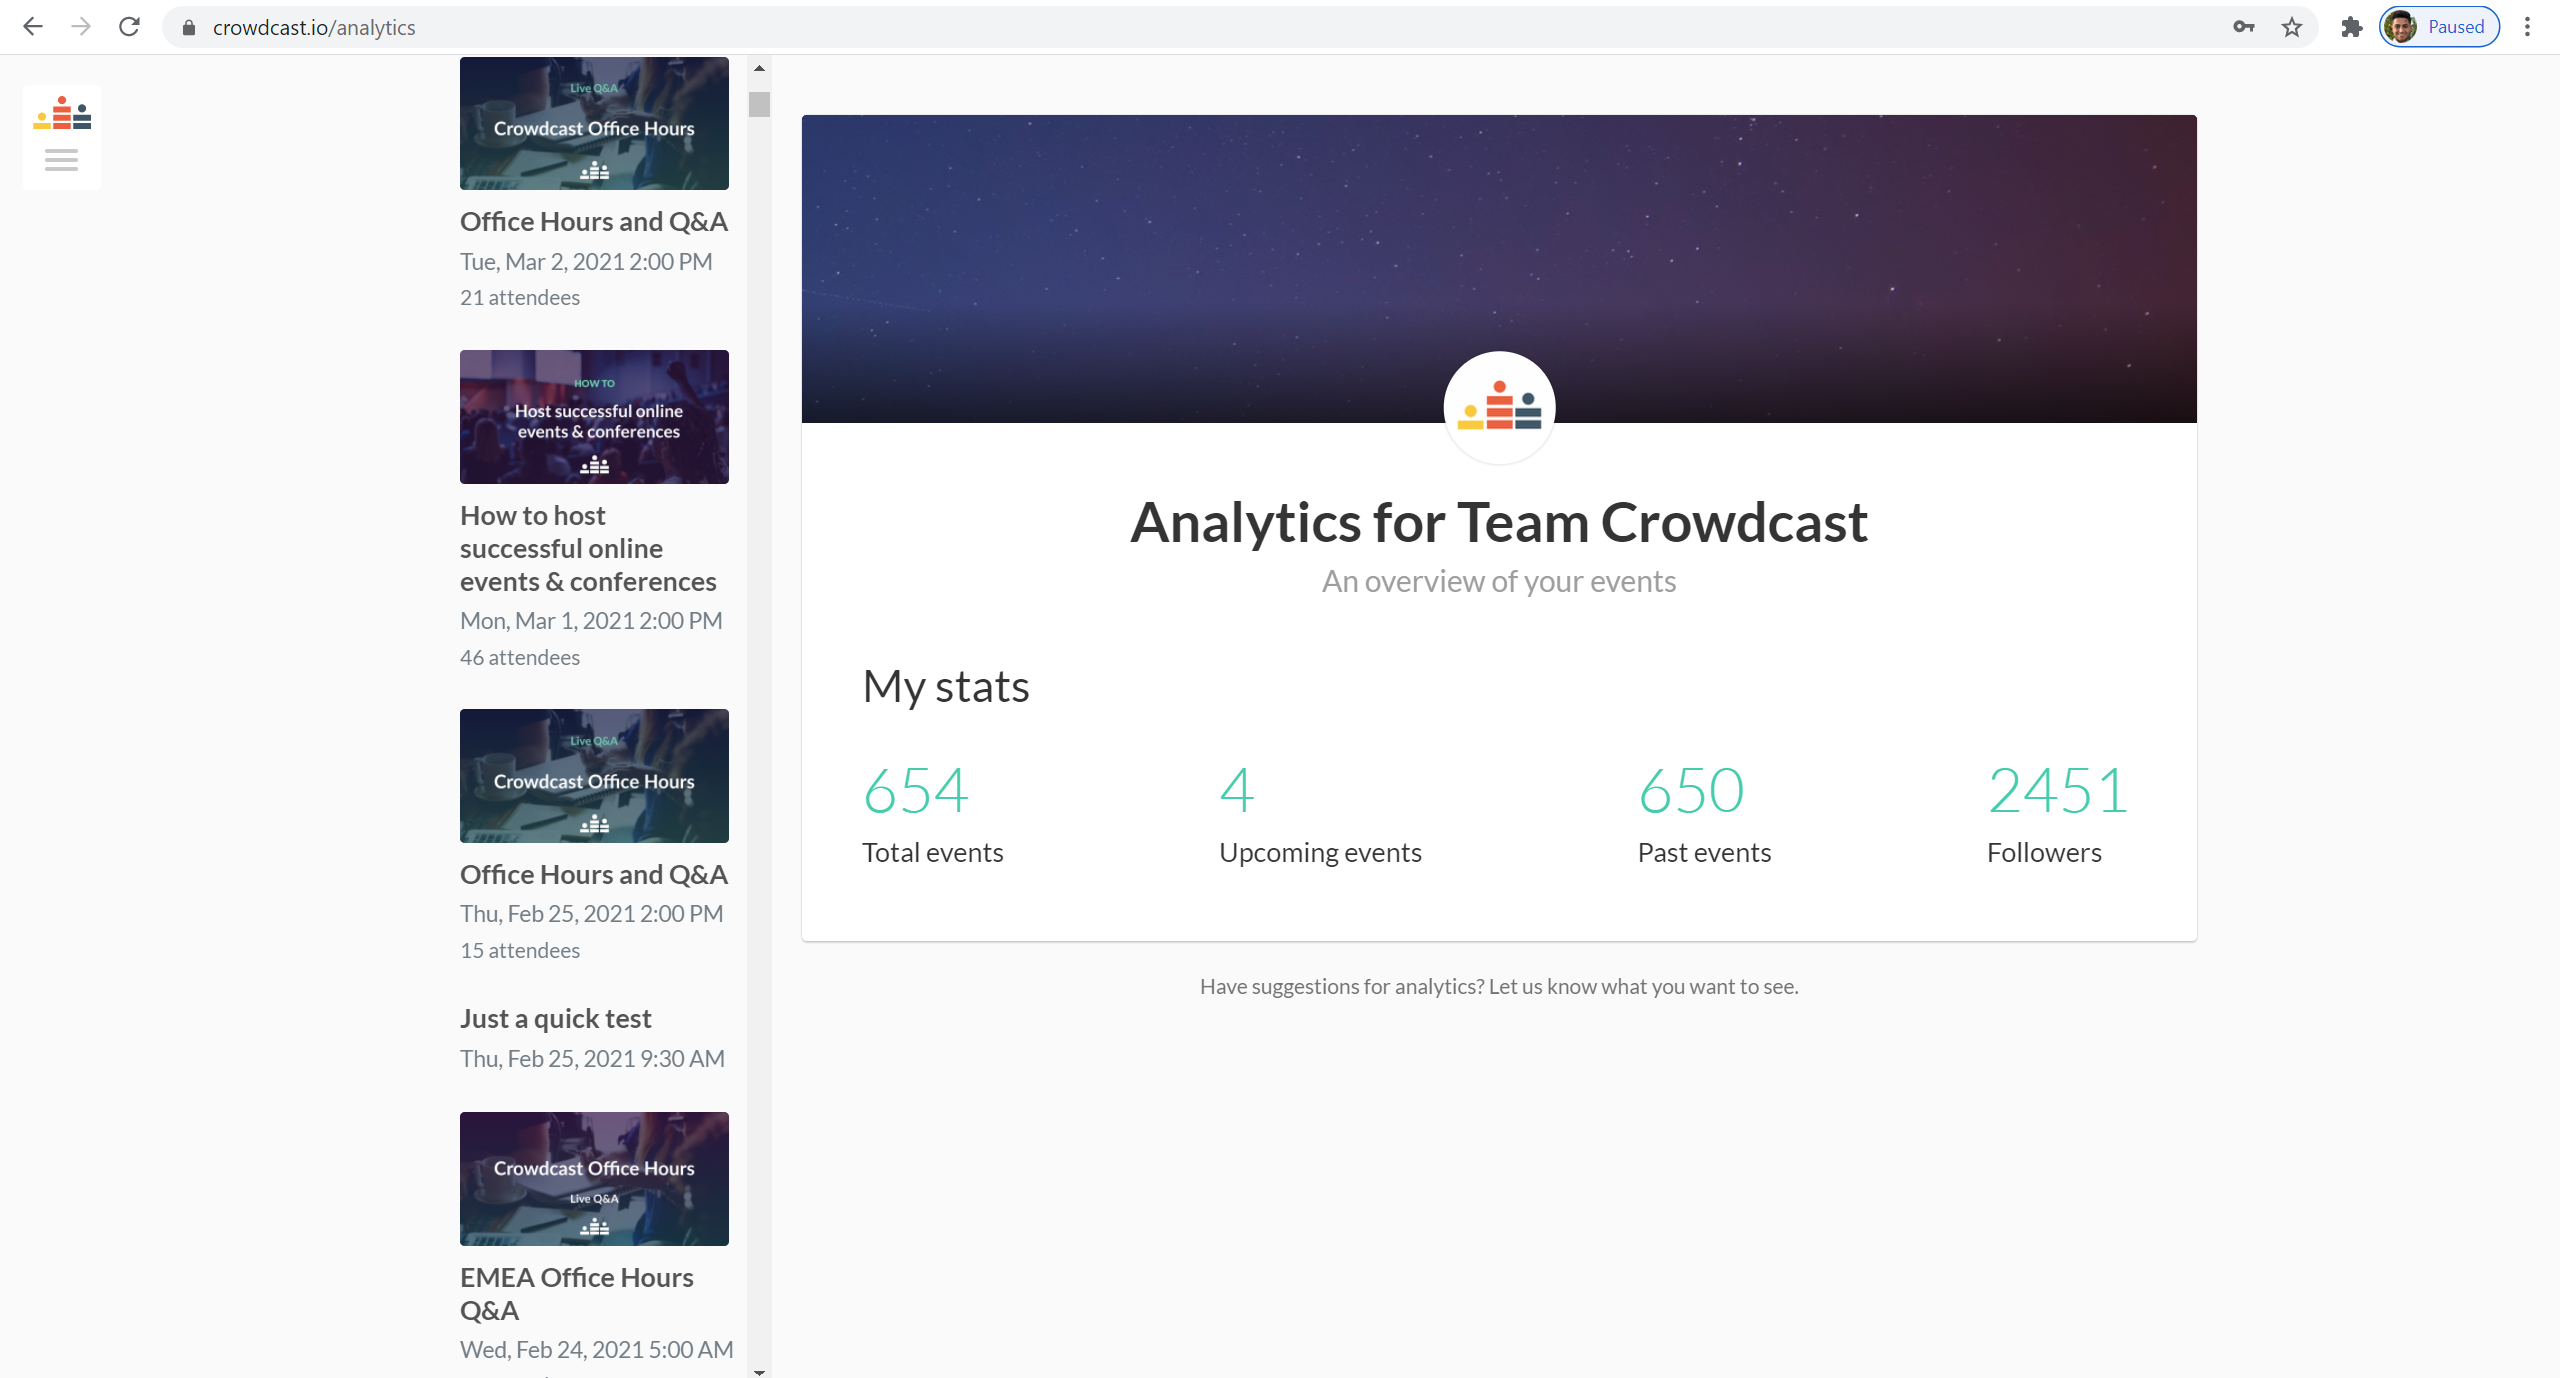 The analytics overview.